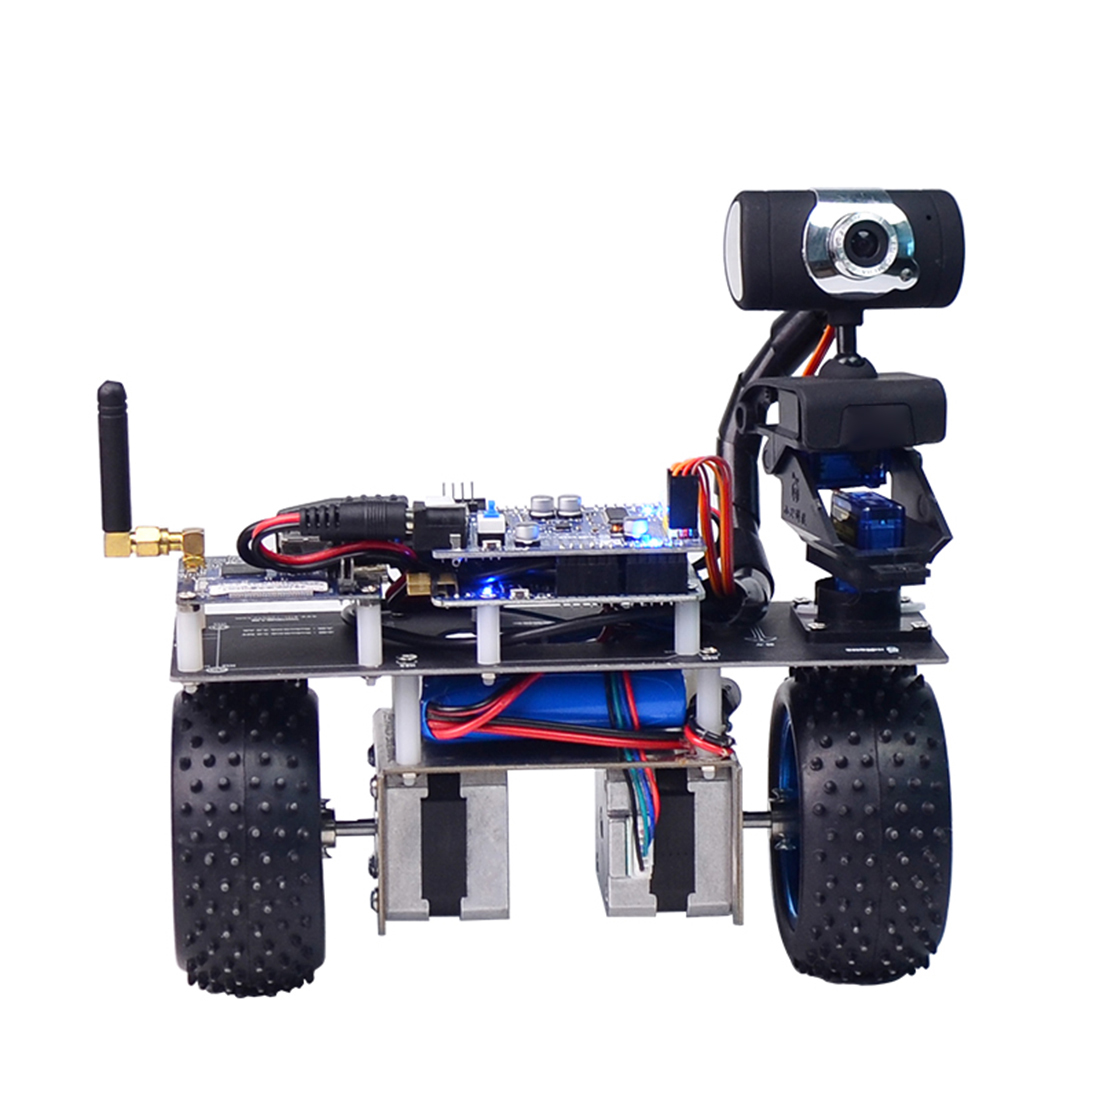 DIY Stem Programmable Intelligent Balance Car WiFi Video Robot Car Support iOS/Android APP PC Remote Control for STM32 2